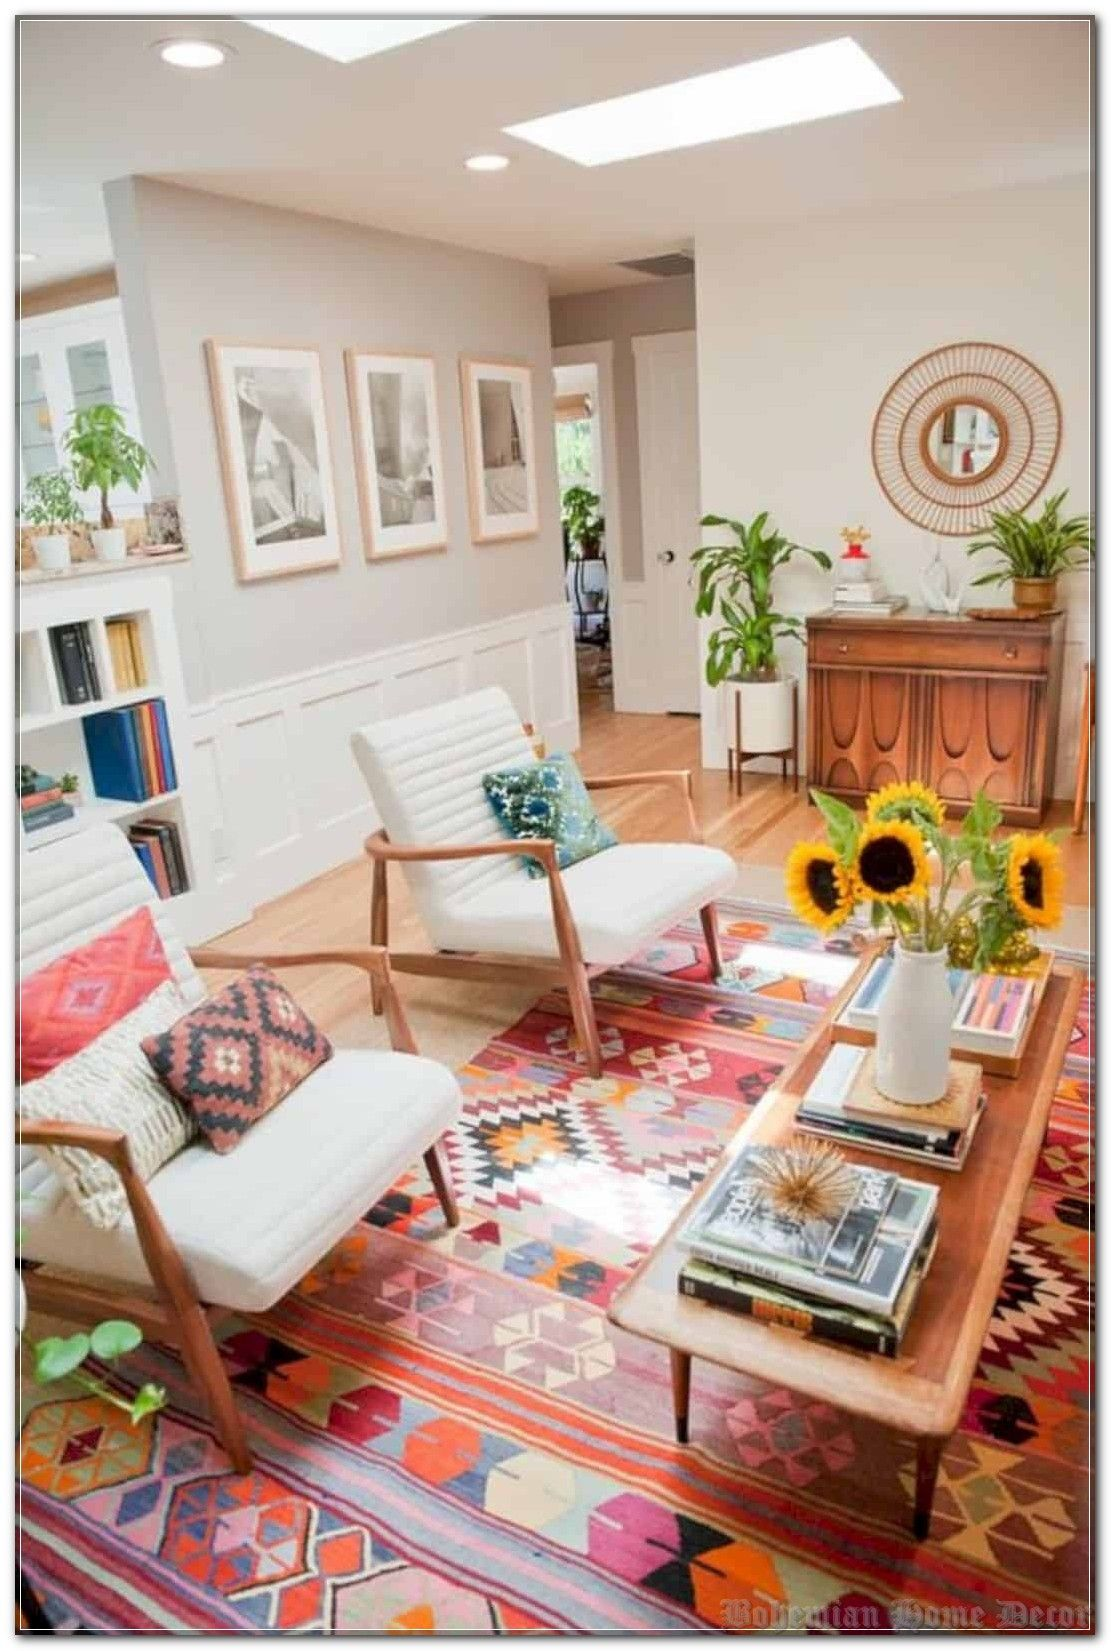 What Is Bohemian Home Decor and How Does It Work?